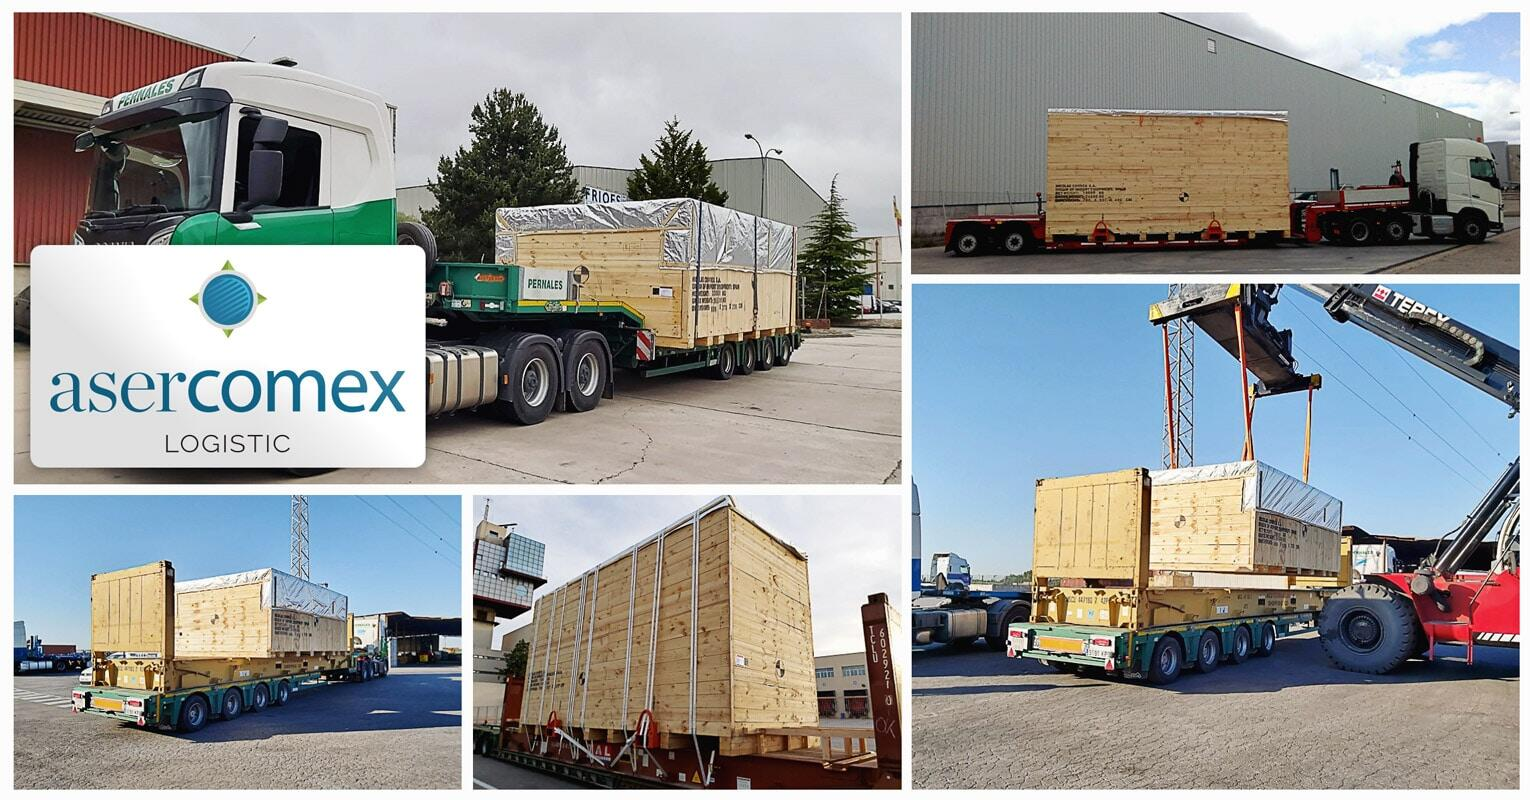 Asercomex Shipped a Large Machine from Burgos (Spain) to Yantian (China)